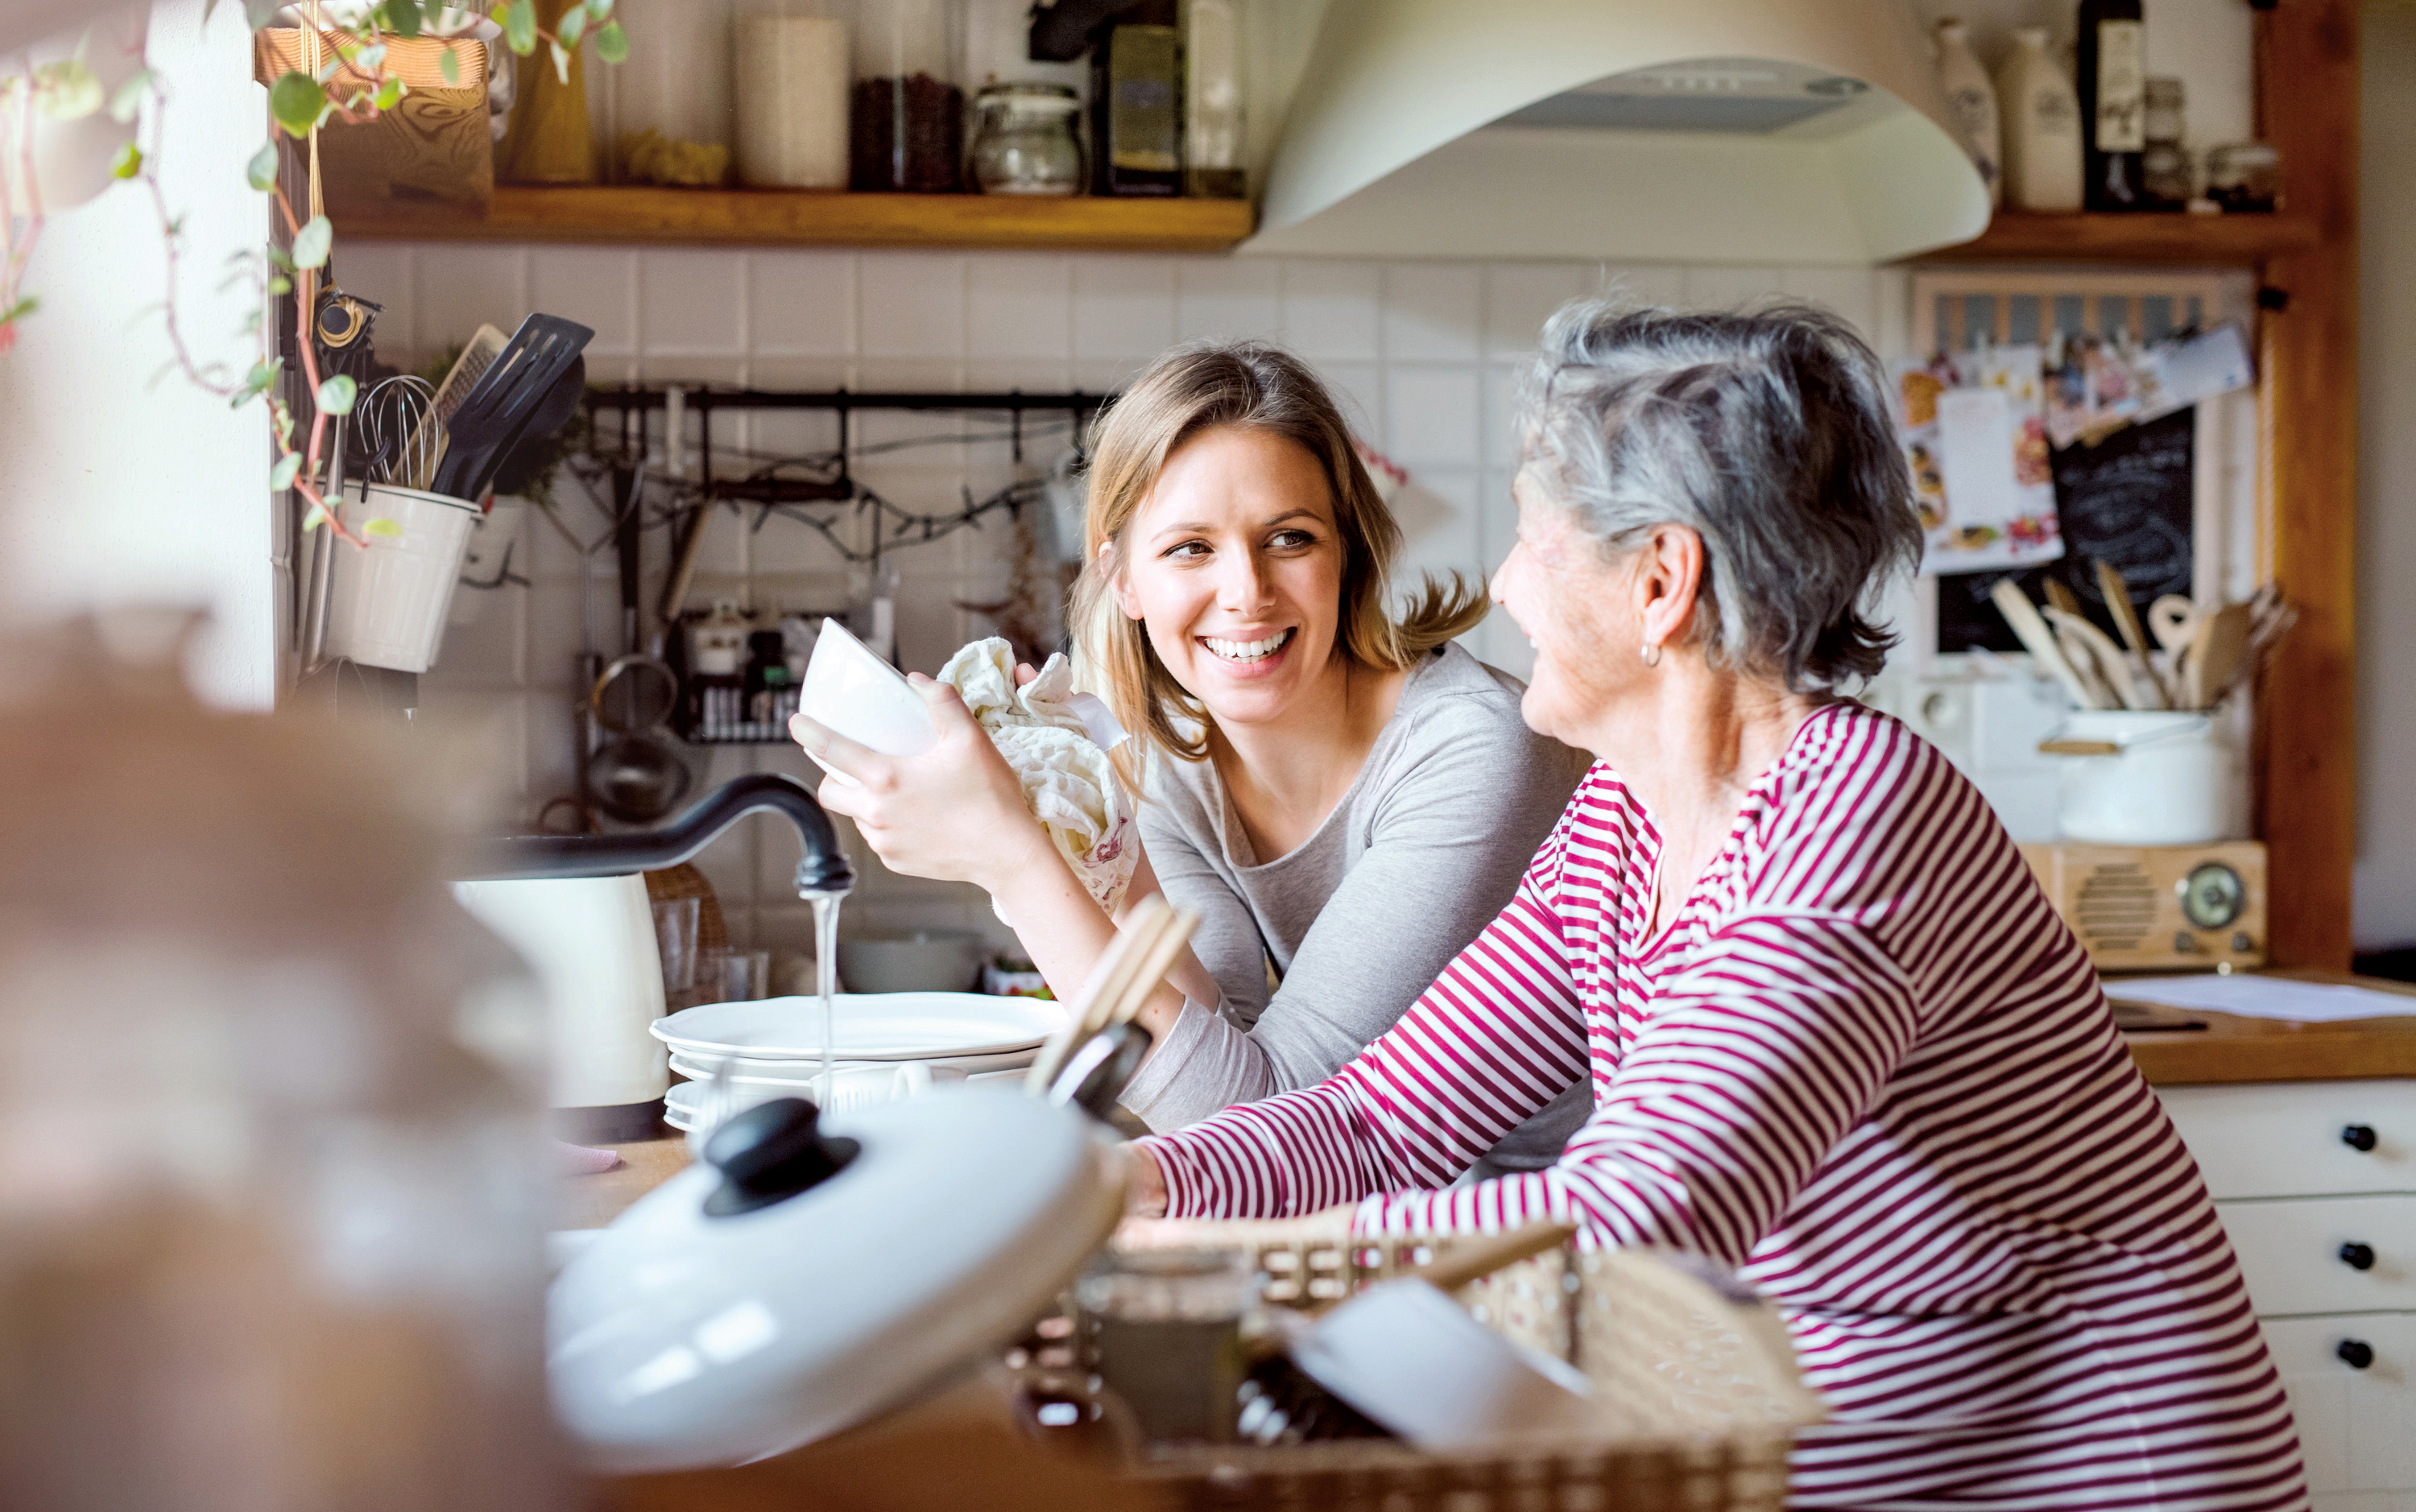 a woman and her mother washing dishes together smiling and laughing